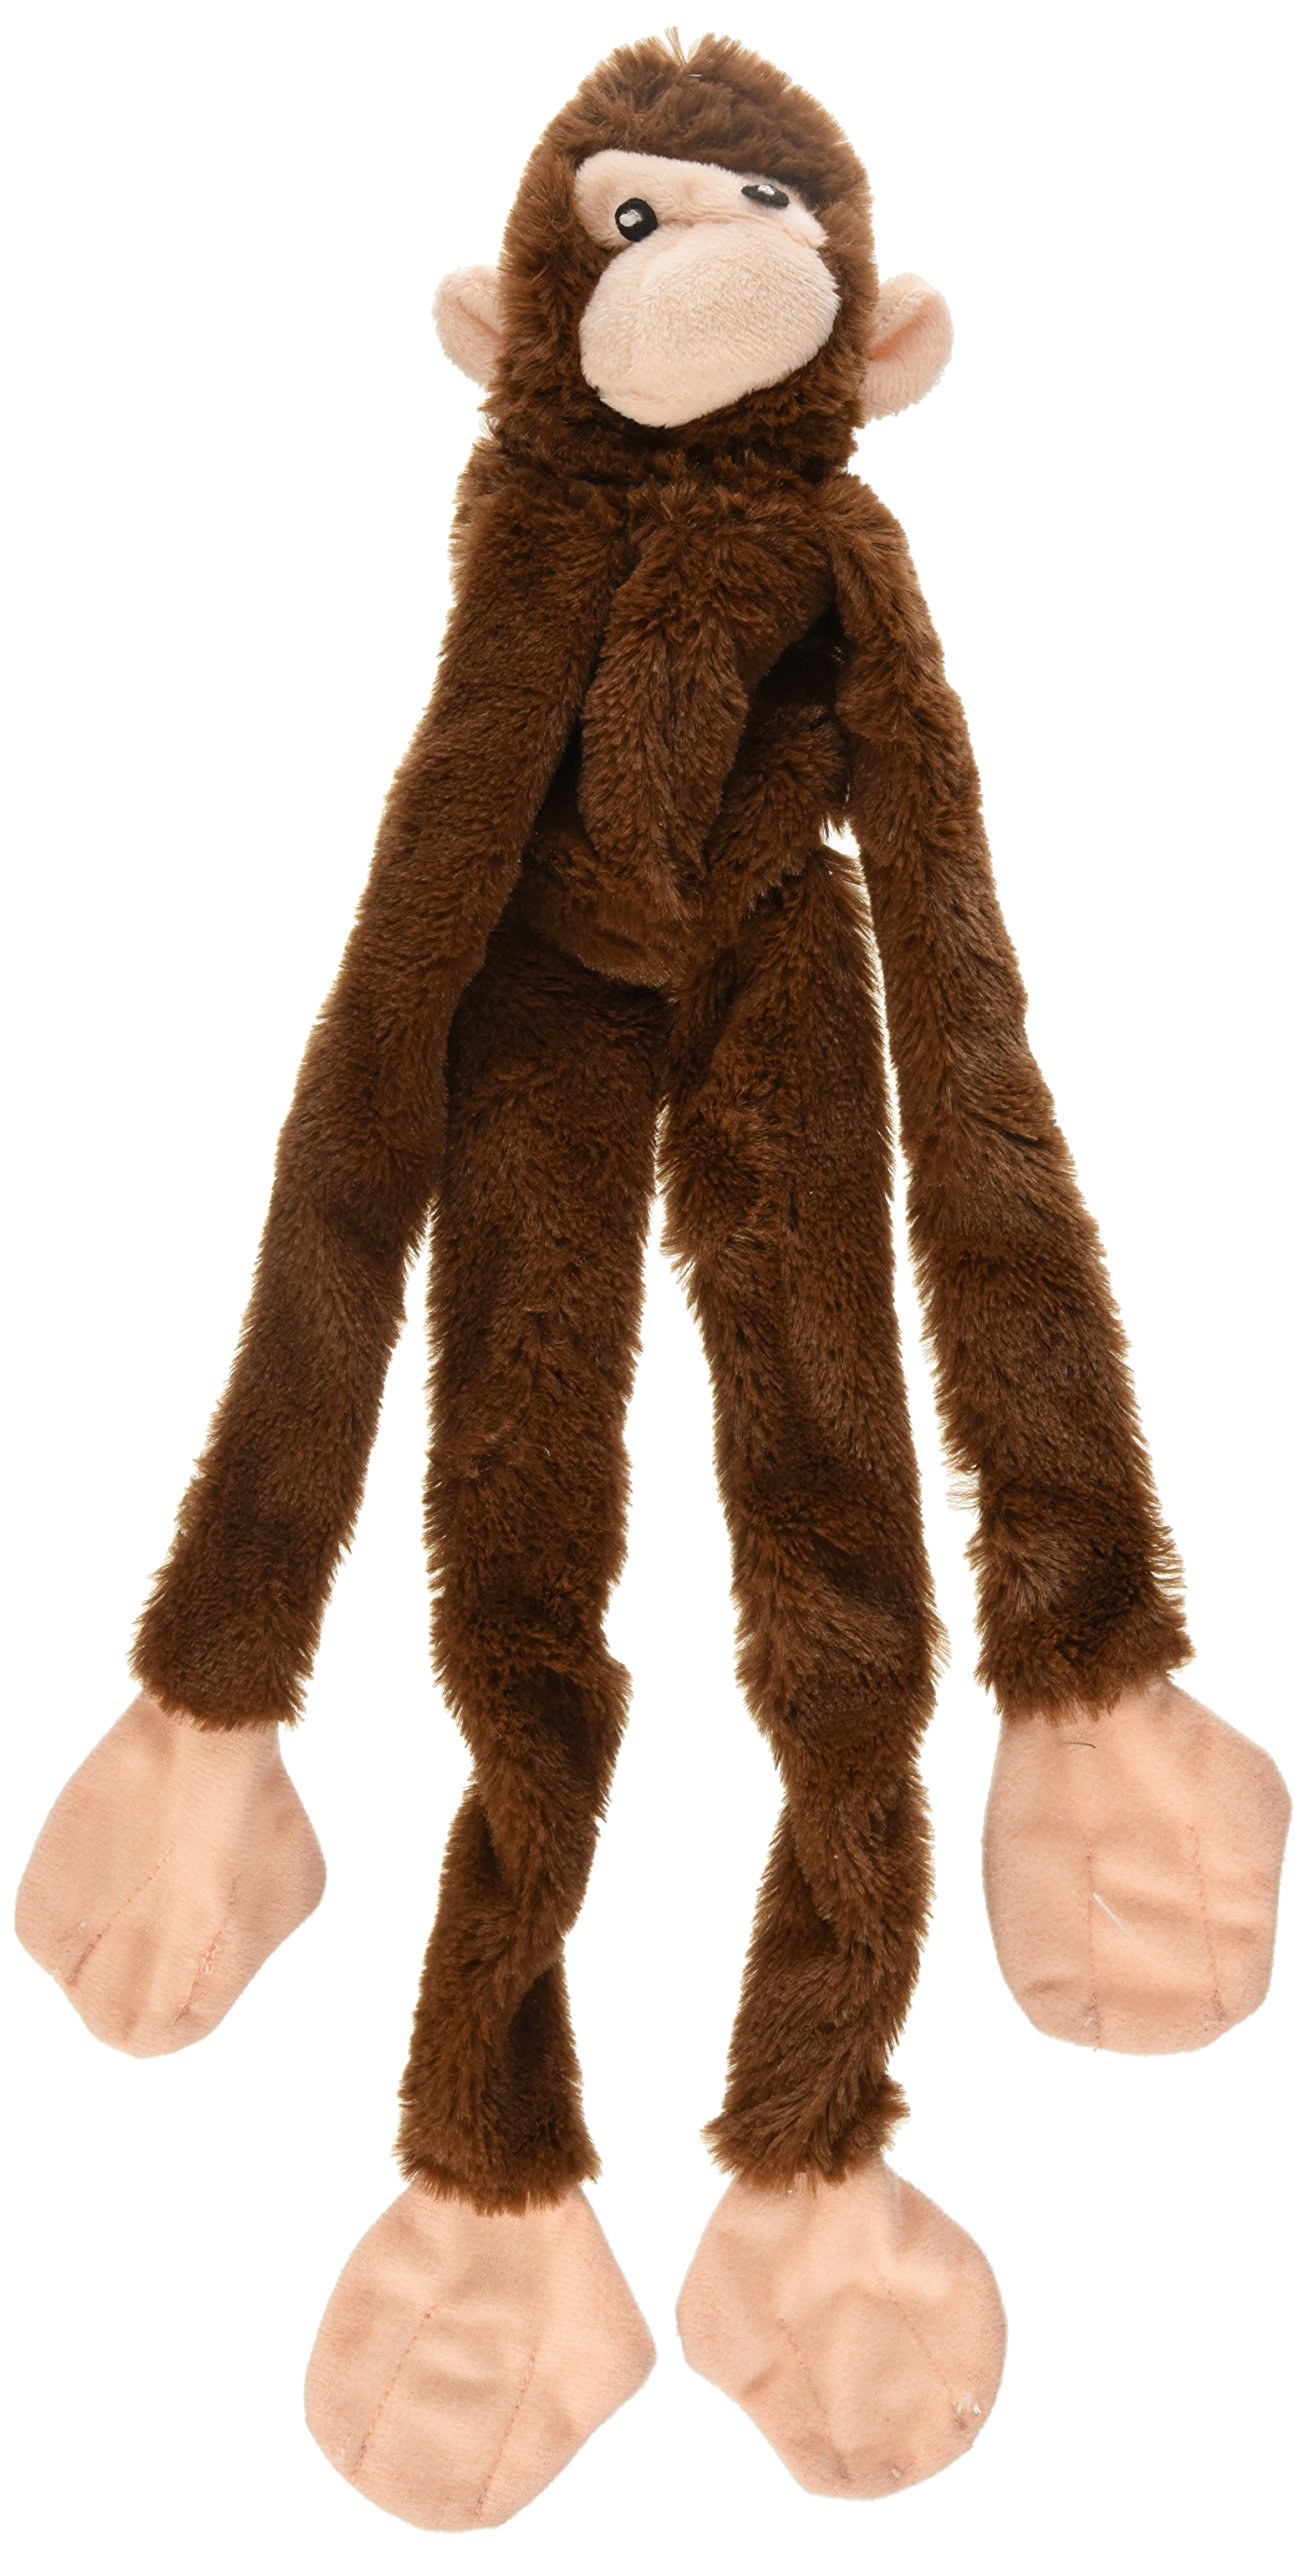 Ethical Plush Skinneeez Monkey 16-Inch Stuffingless Dog Toy - Assorted Colors